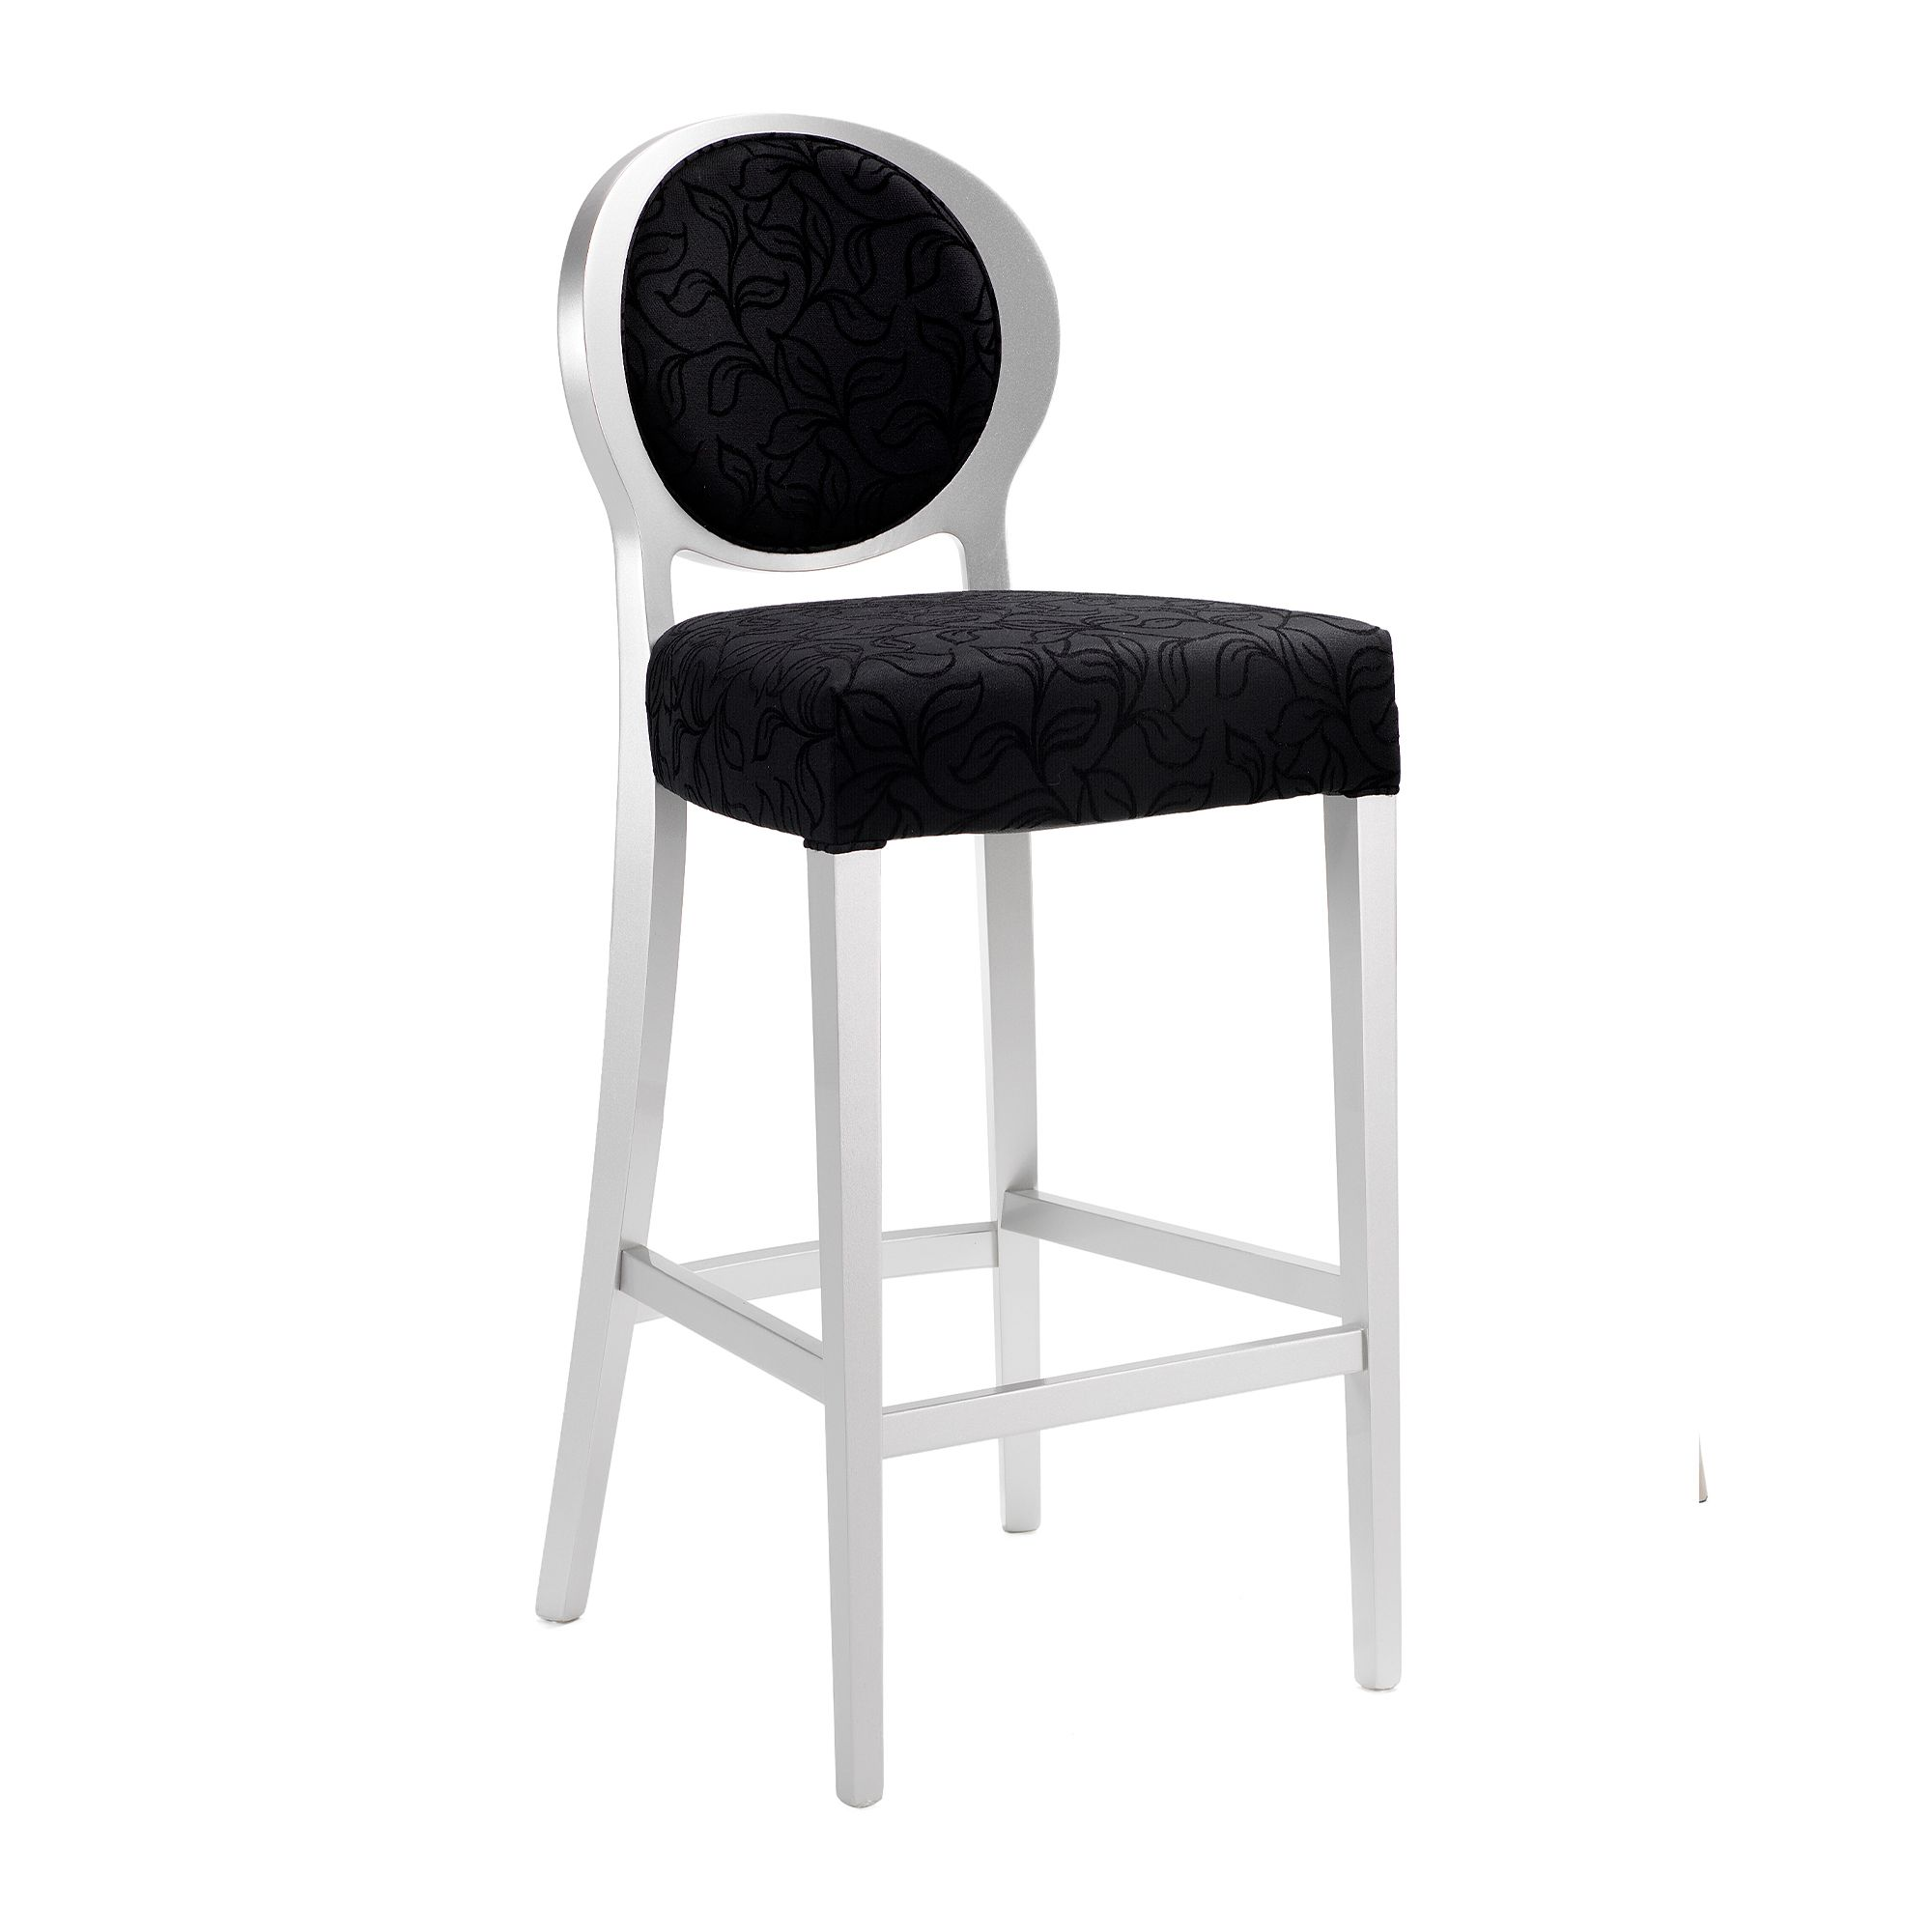 Model 928 stool in classic style